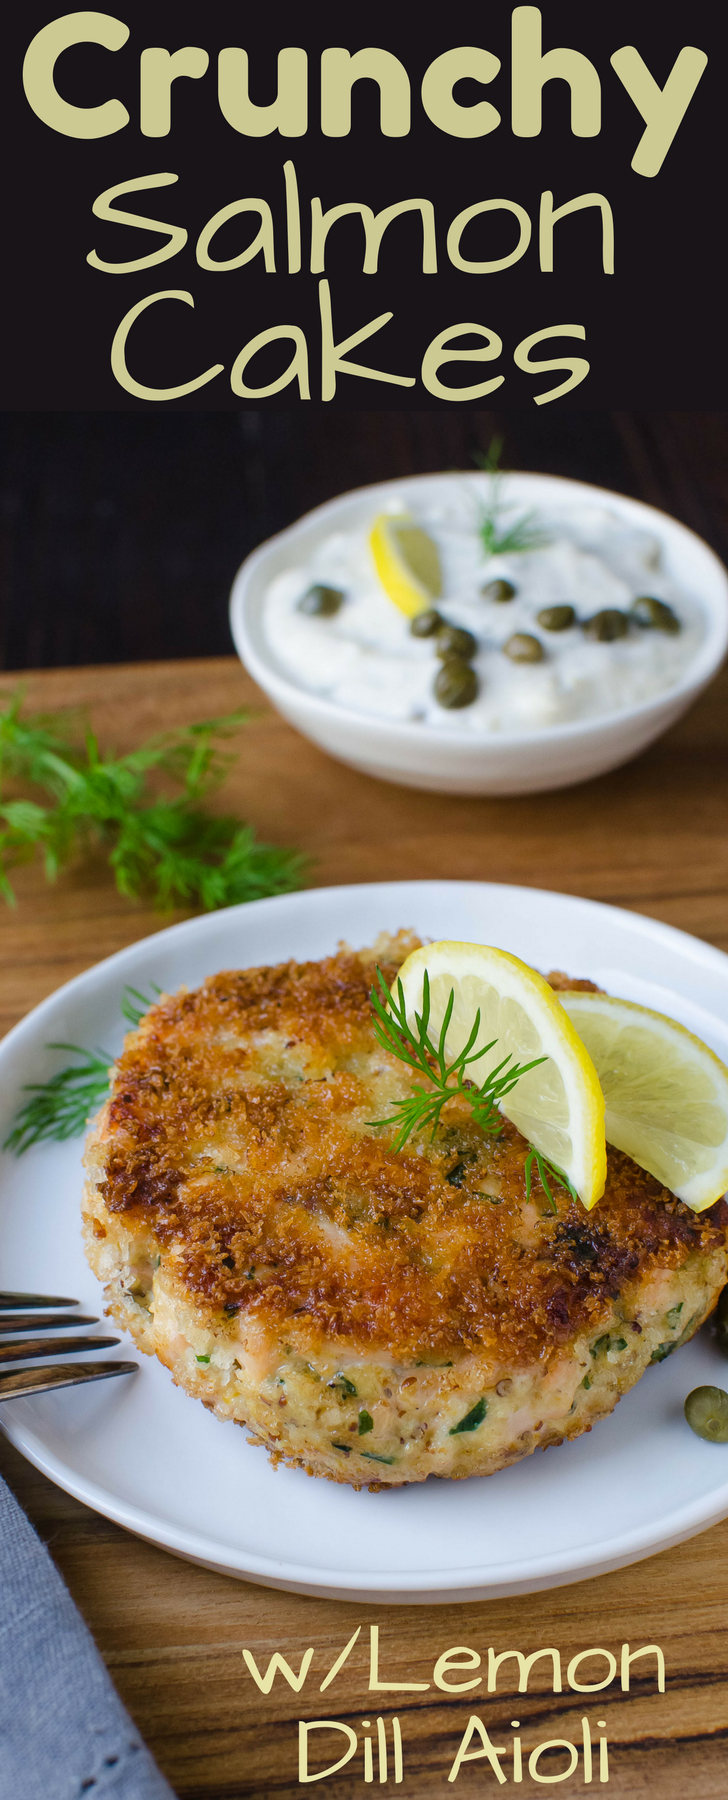 Easy Crunchy Salmon Cakes have a panko breading with both fresh and smoked salmon for depth. Top with fresh lemon dill aioli!  Best salmon cake recipe EVER!